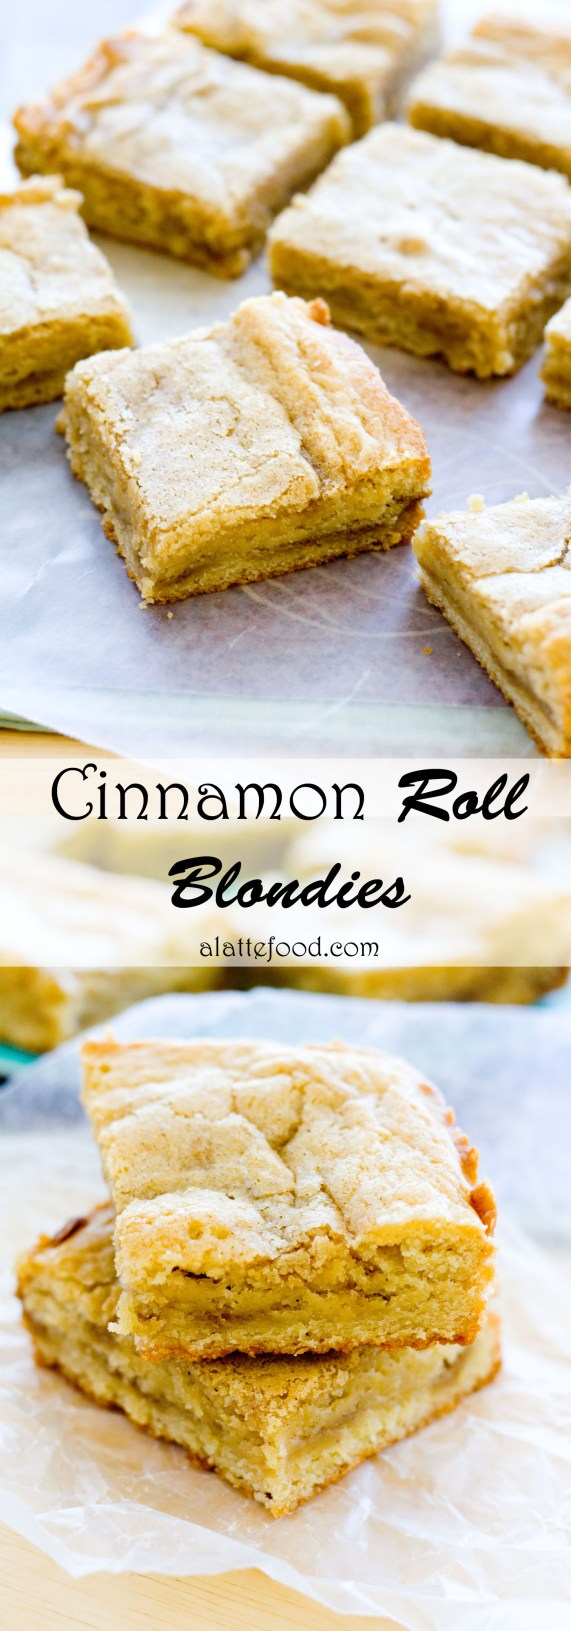 Cinnamon Roll Blondies | A Latte Food